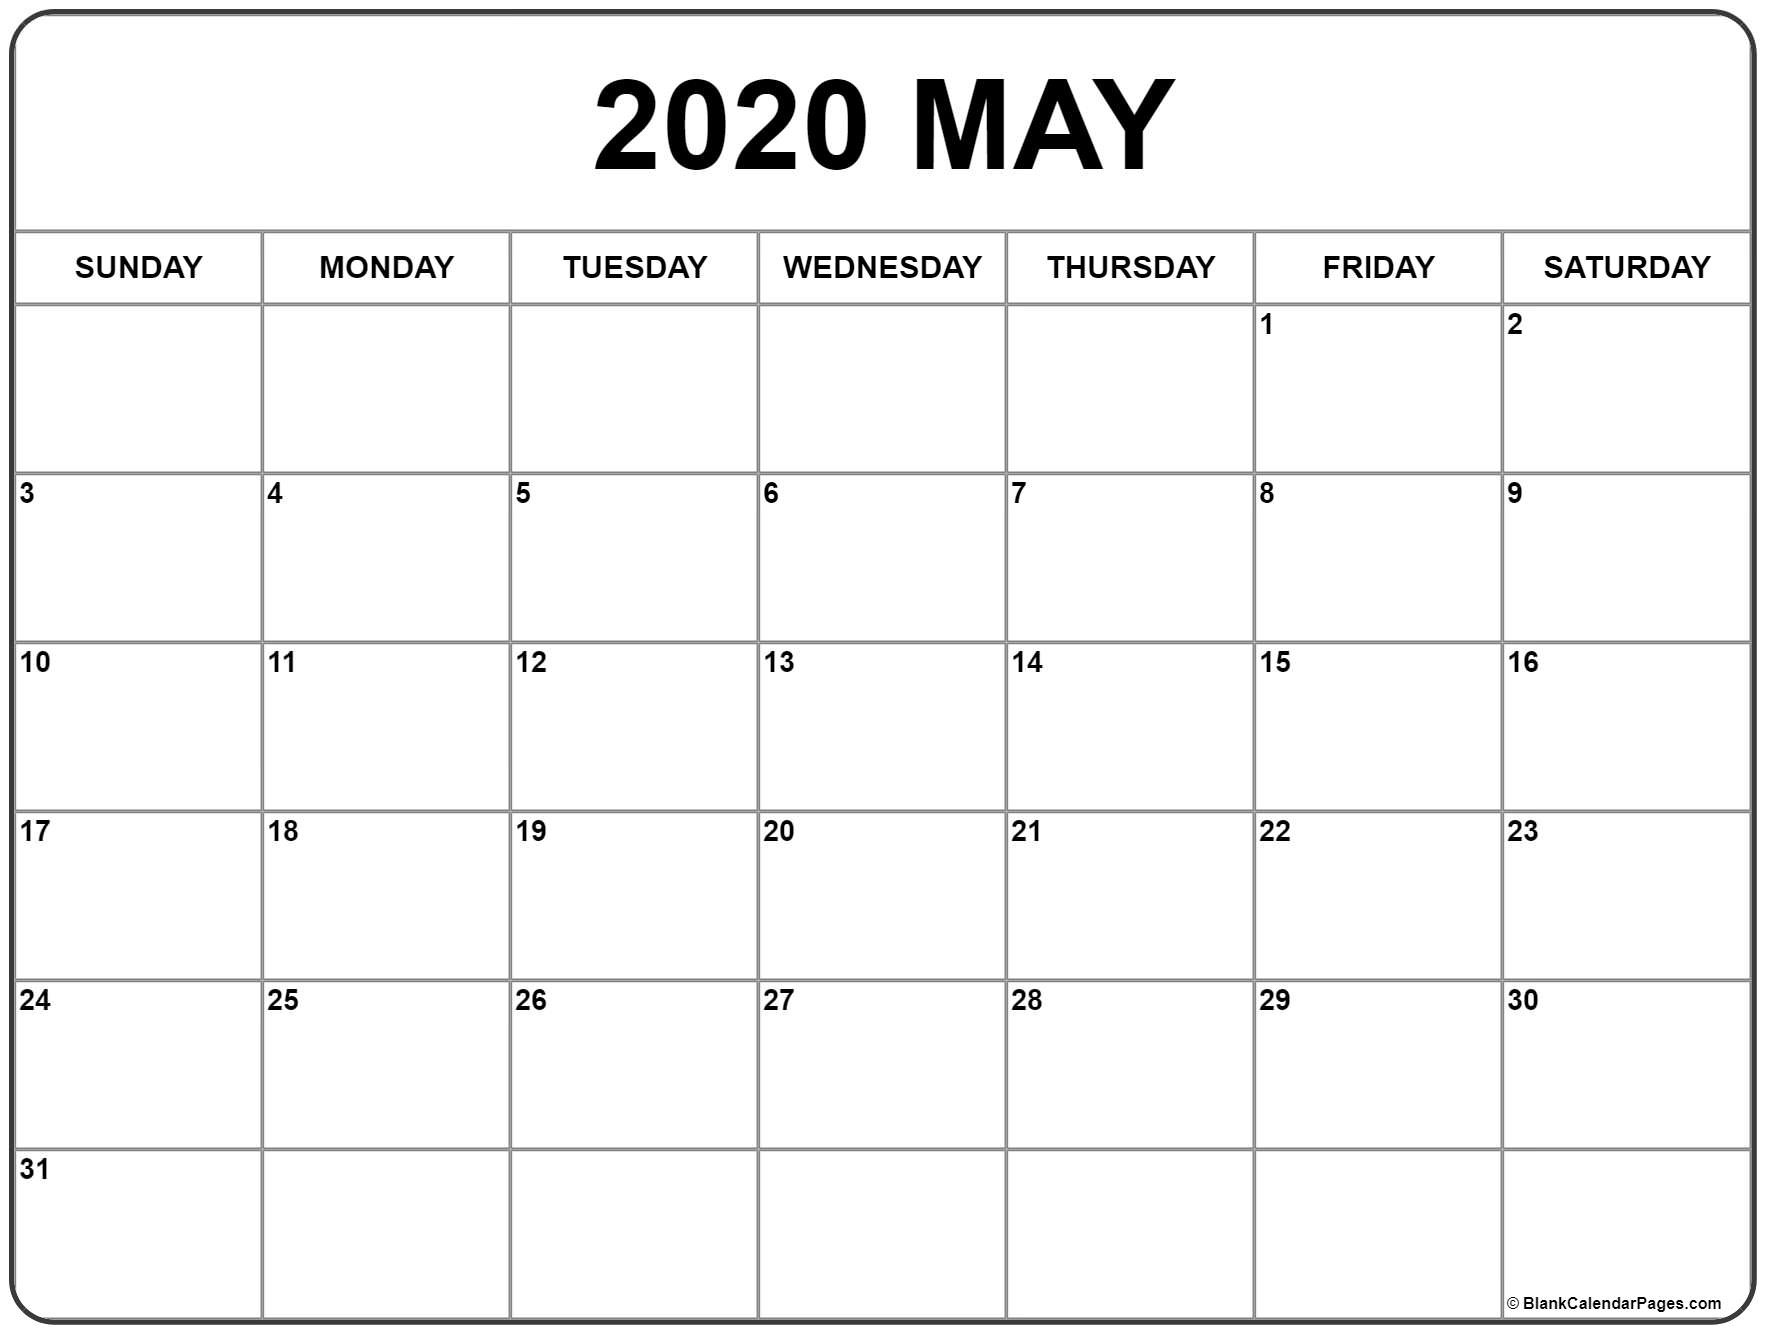 May 2020 Calendar | Free Printable Monthly Calendars  May 2020 Calendar